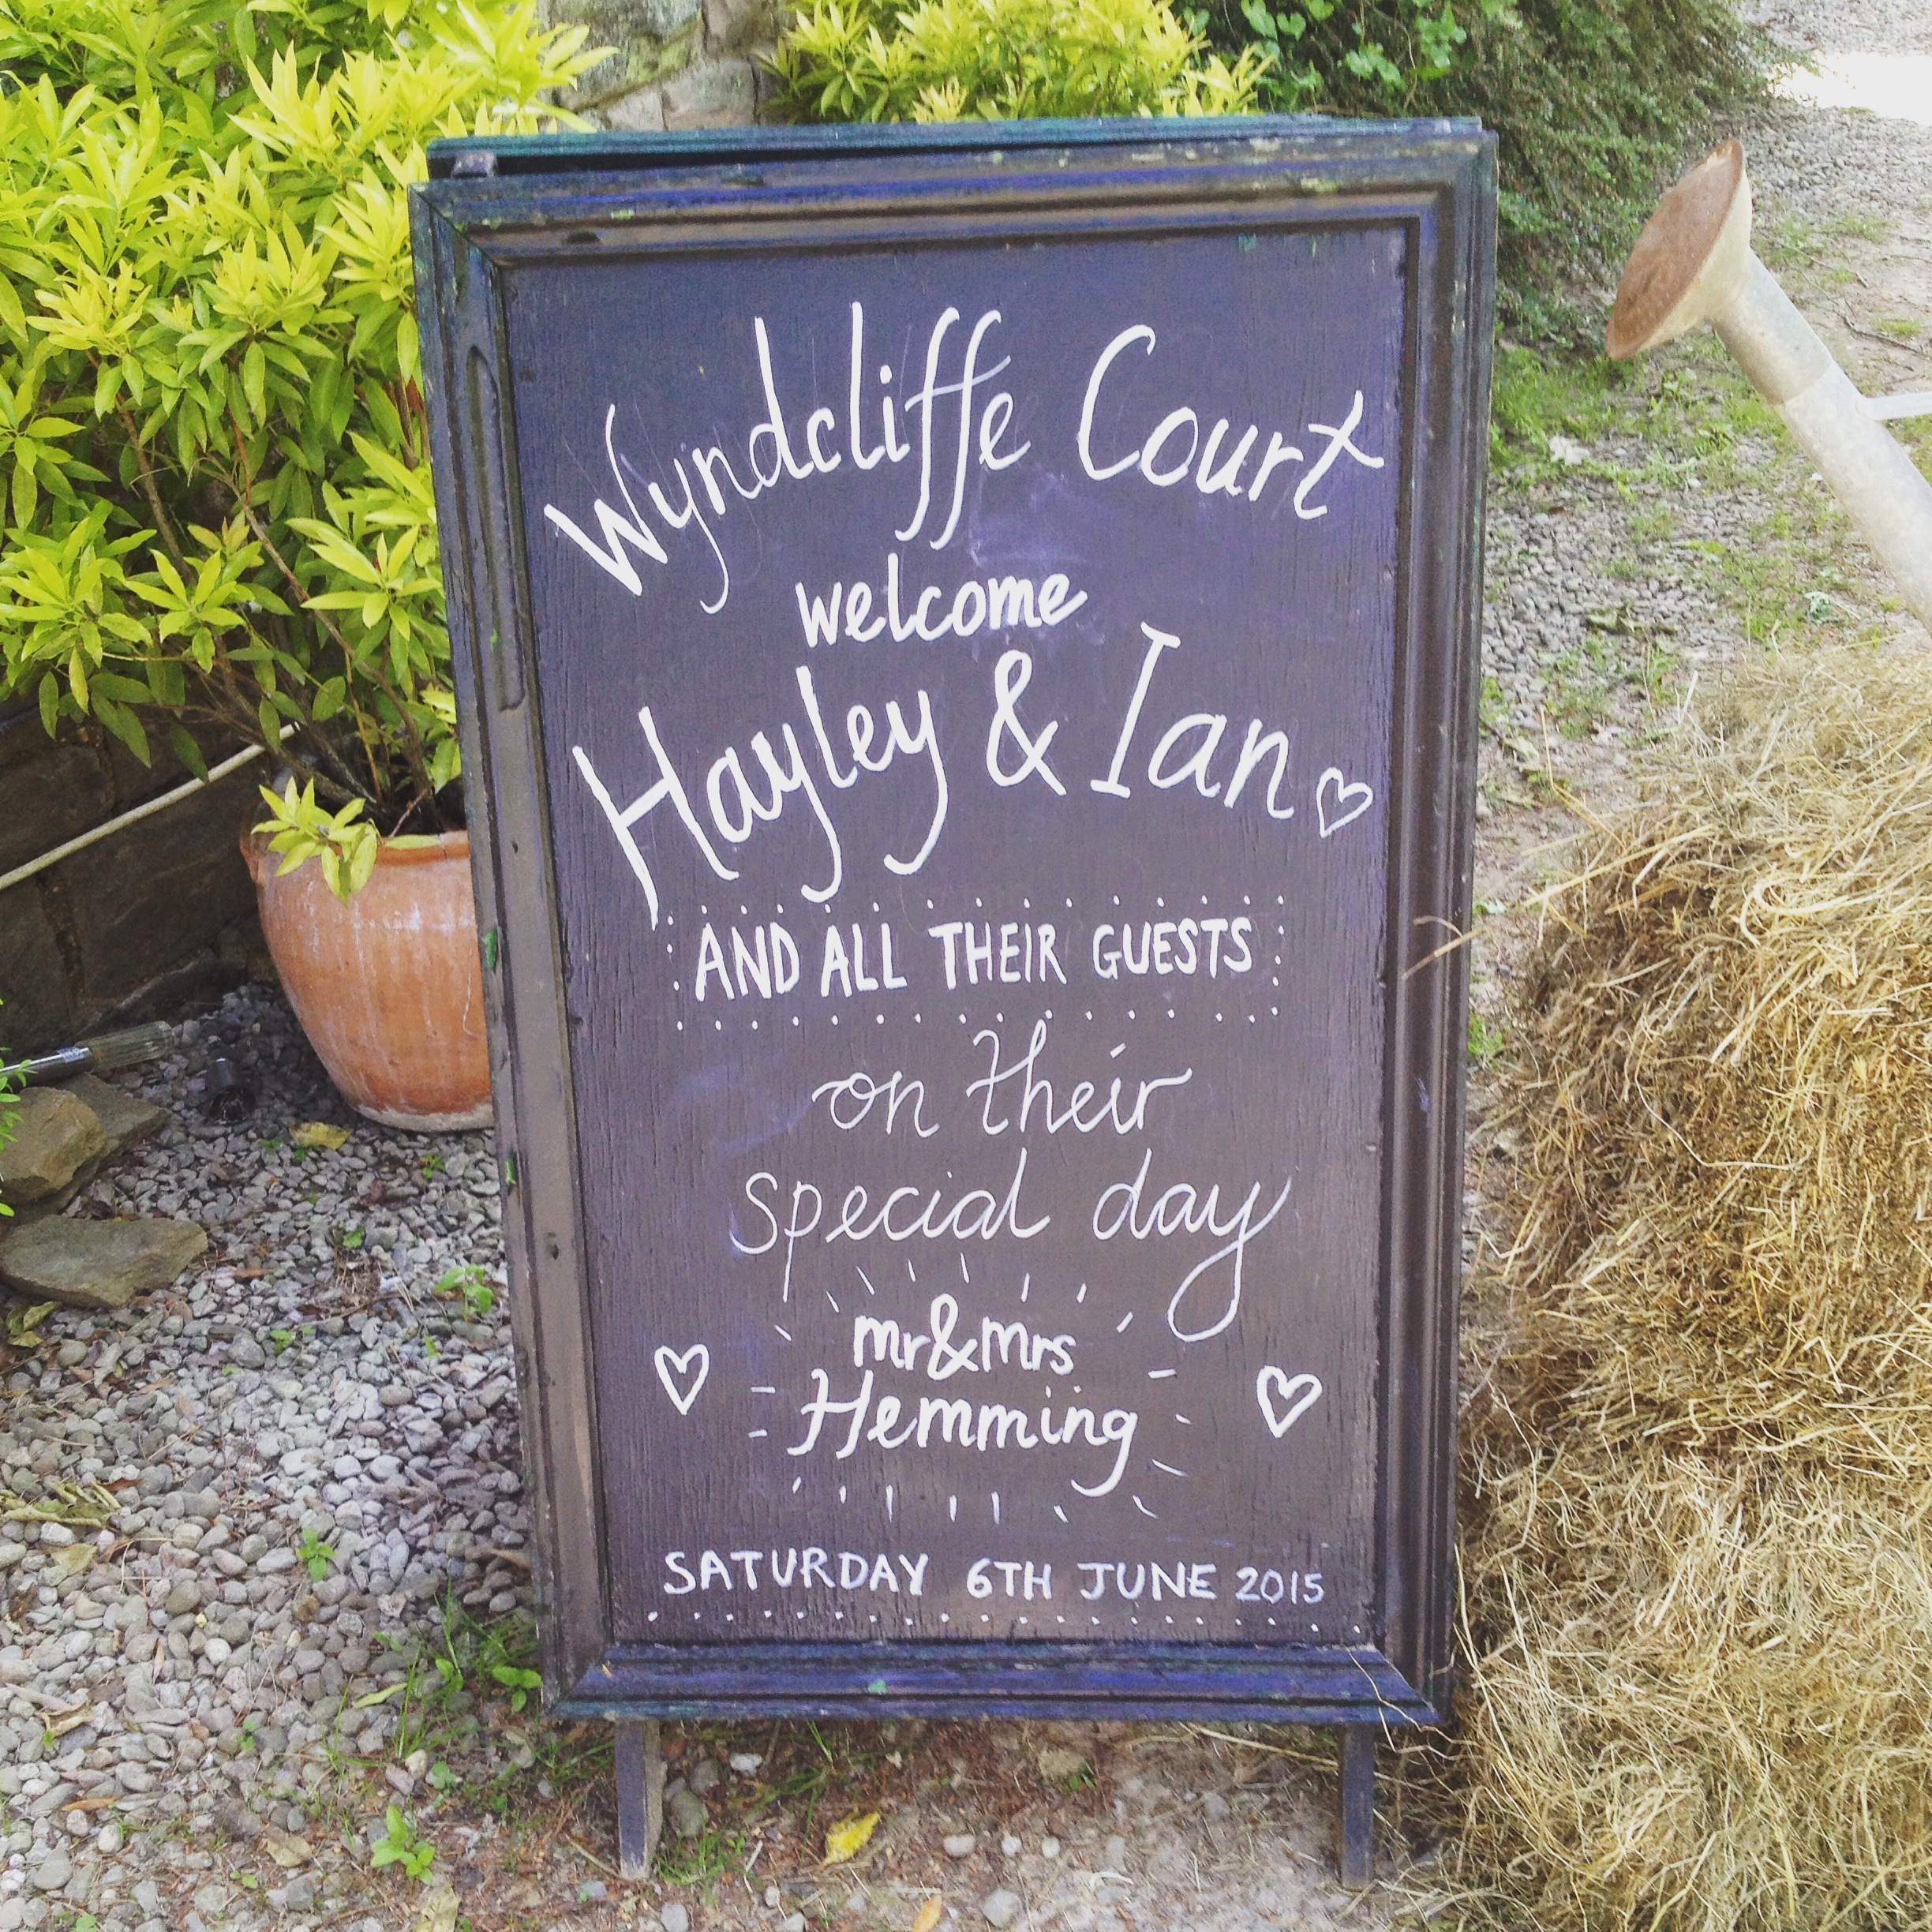 Wyndcliffe Court Gardens Wedding